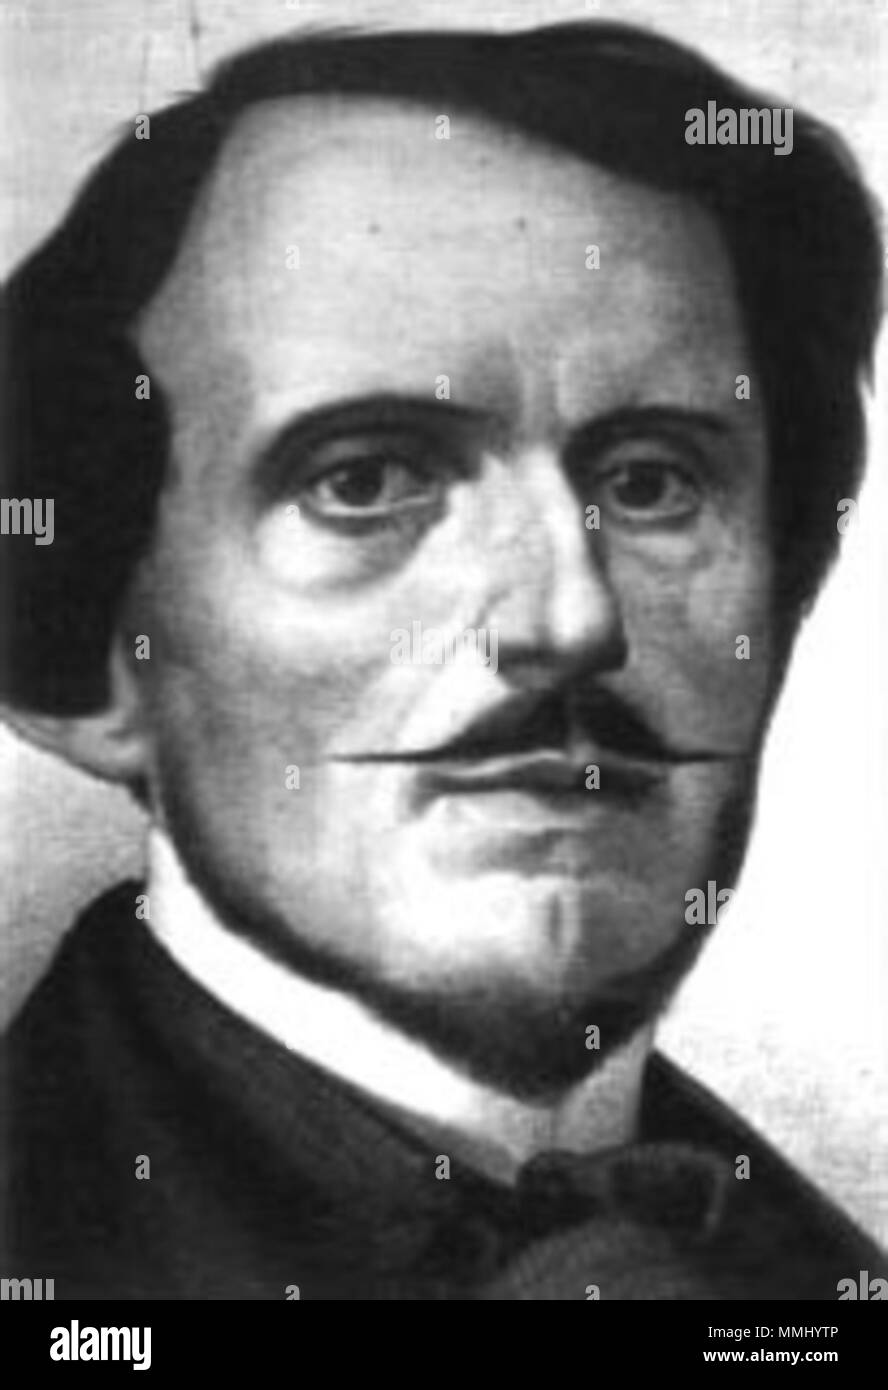 . Italiano: Immagine dello statista è:Bettino Ricasoli (1809-1880). . 8 maggio 2004 (originale data di caricamento). Uploader originale era due volte25 a it.wikipedia 83 Bettino Ricasoli Immagini Stock